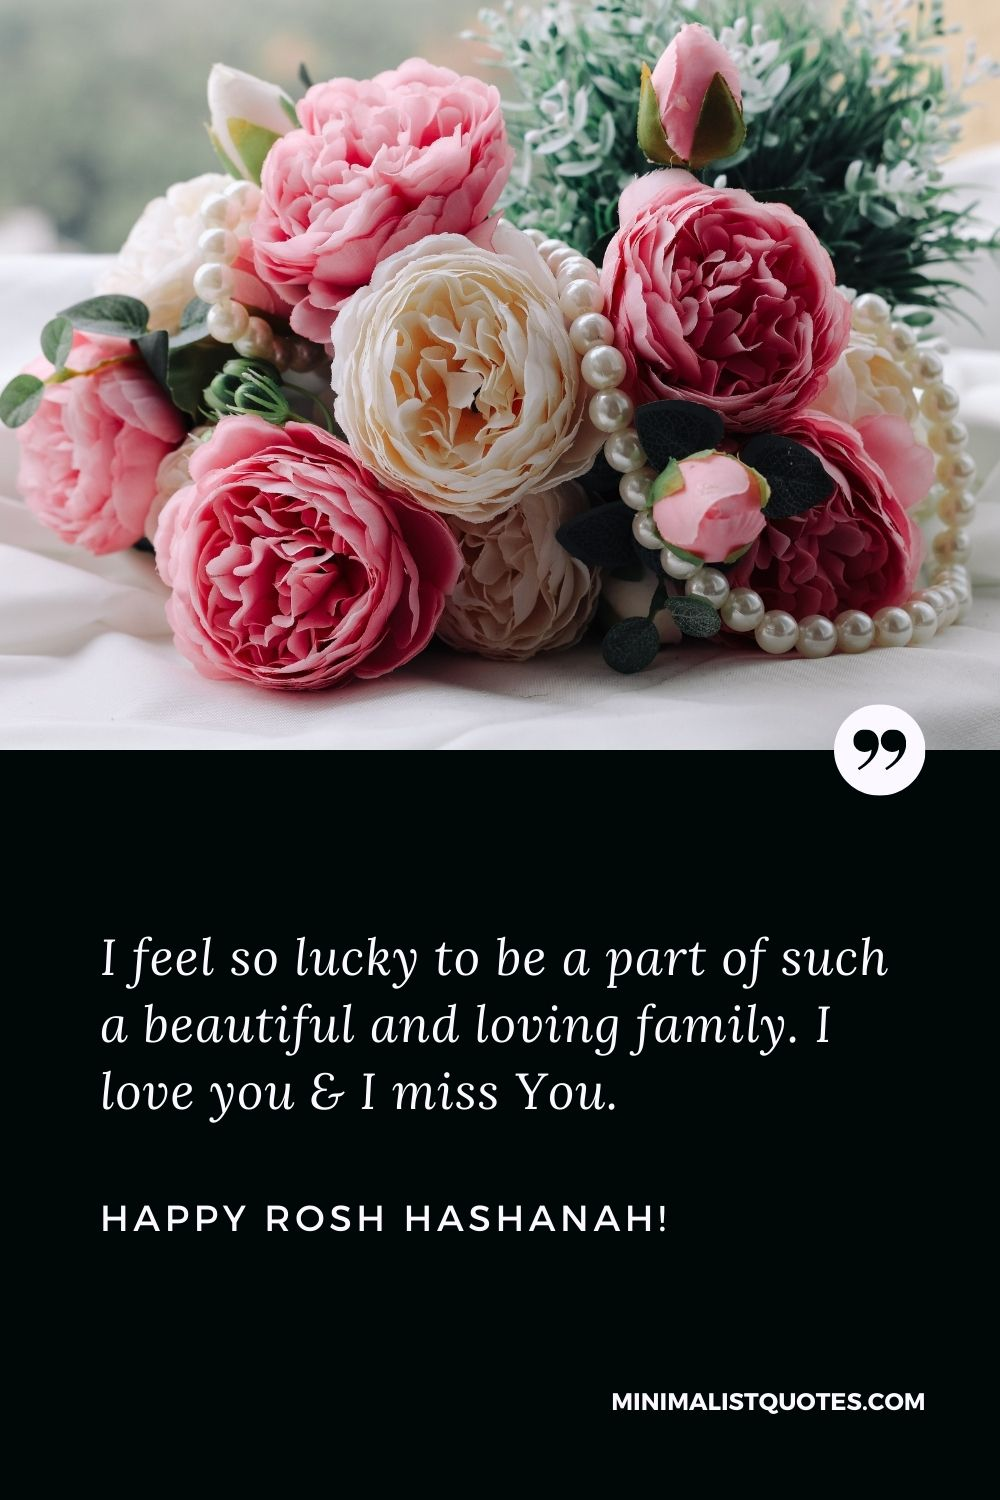 Rosh Hashanah Wishes For Family: I feel so lucky to be a part of such a beautiful and loving family. I love you & I miss You. Happy Rosh Hashanah!